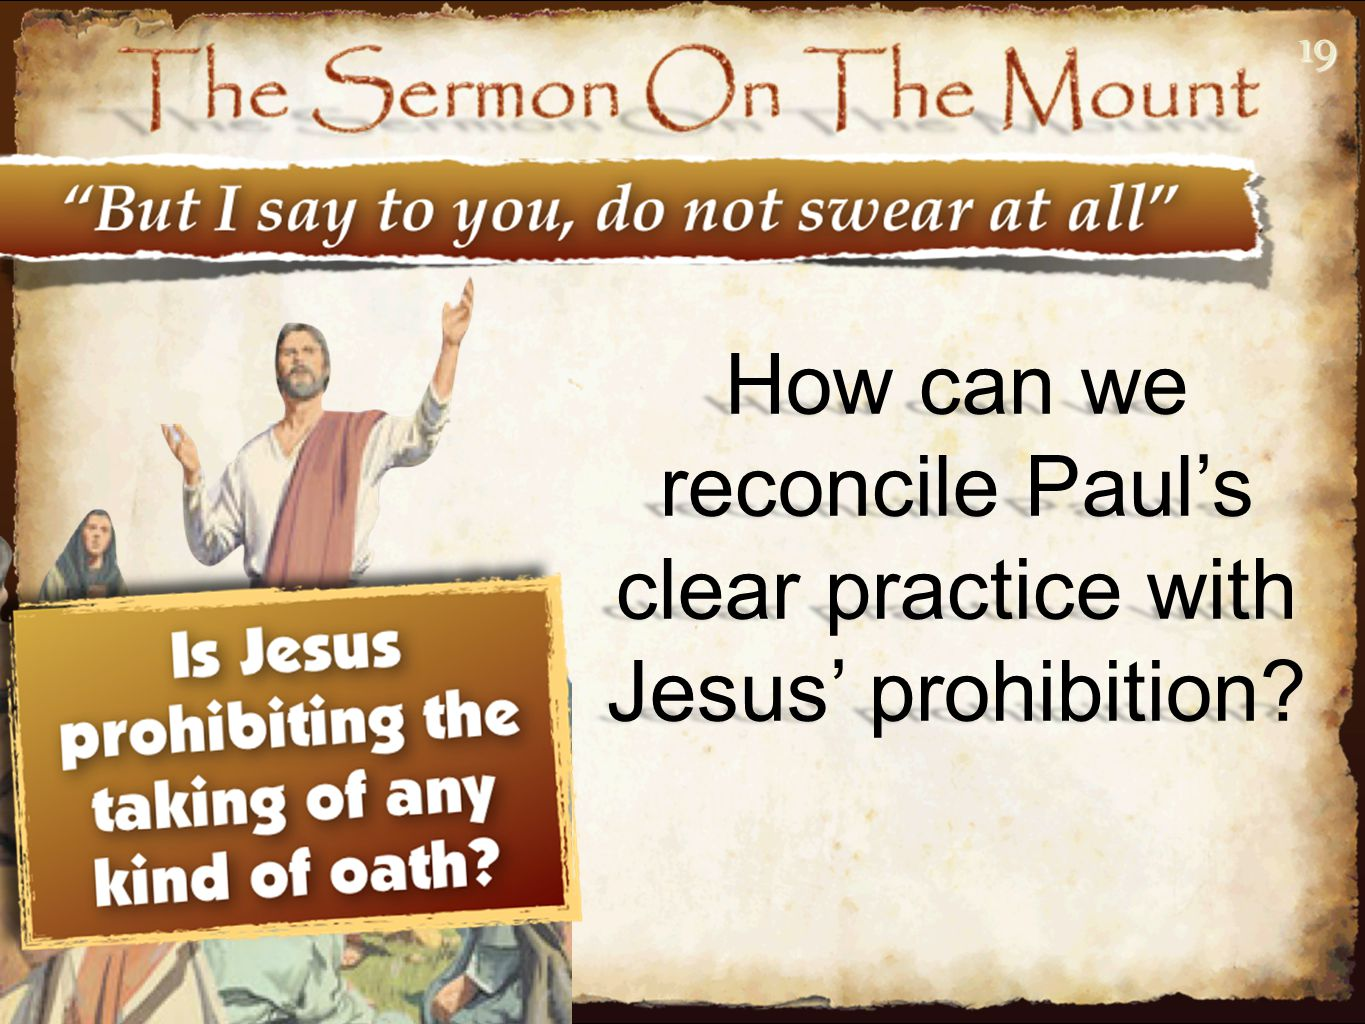 1919 How can we reconcile Paul's clear practice with Jesus' prohibition?